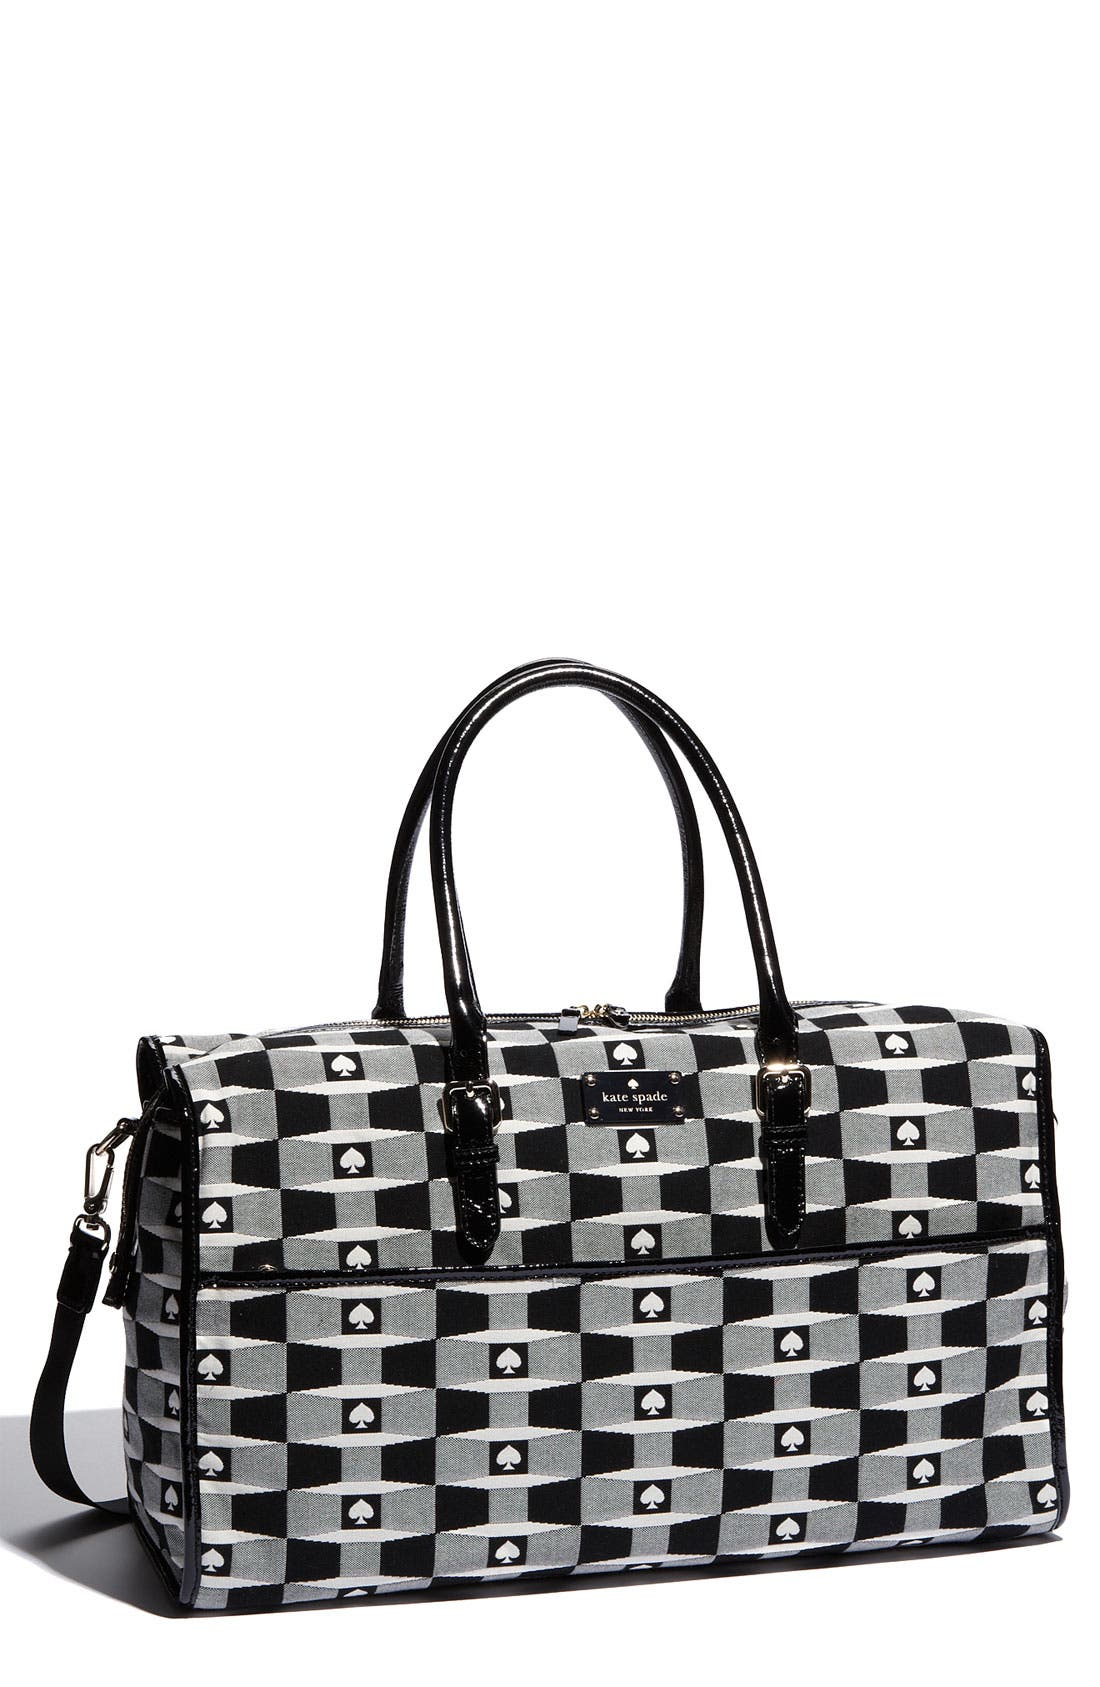 Alternate Image 1 Selected - kate spade new york 'adara' tote